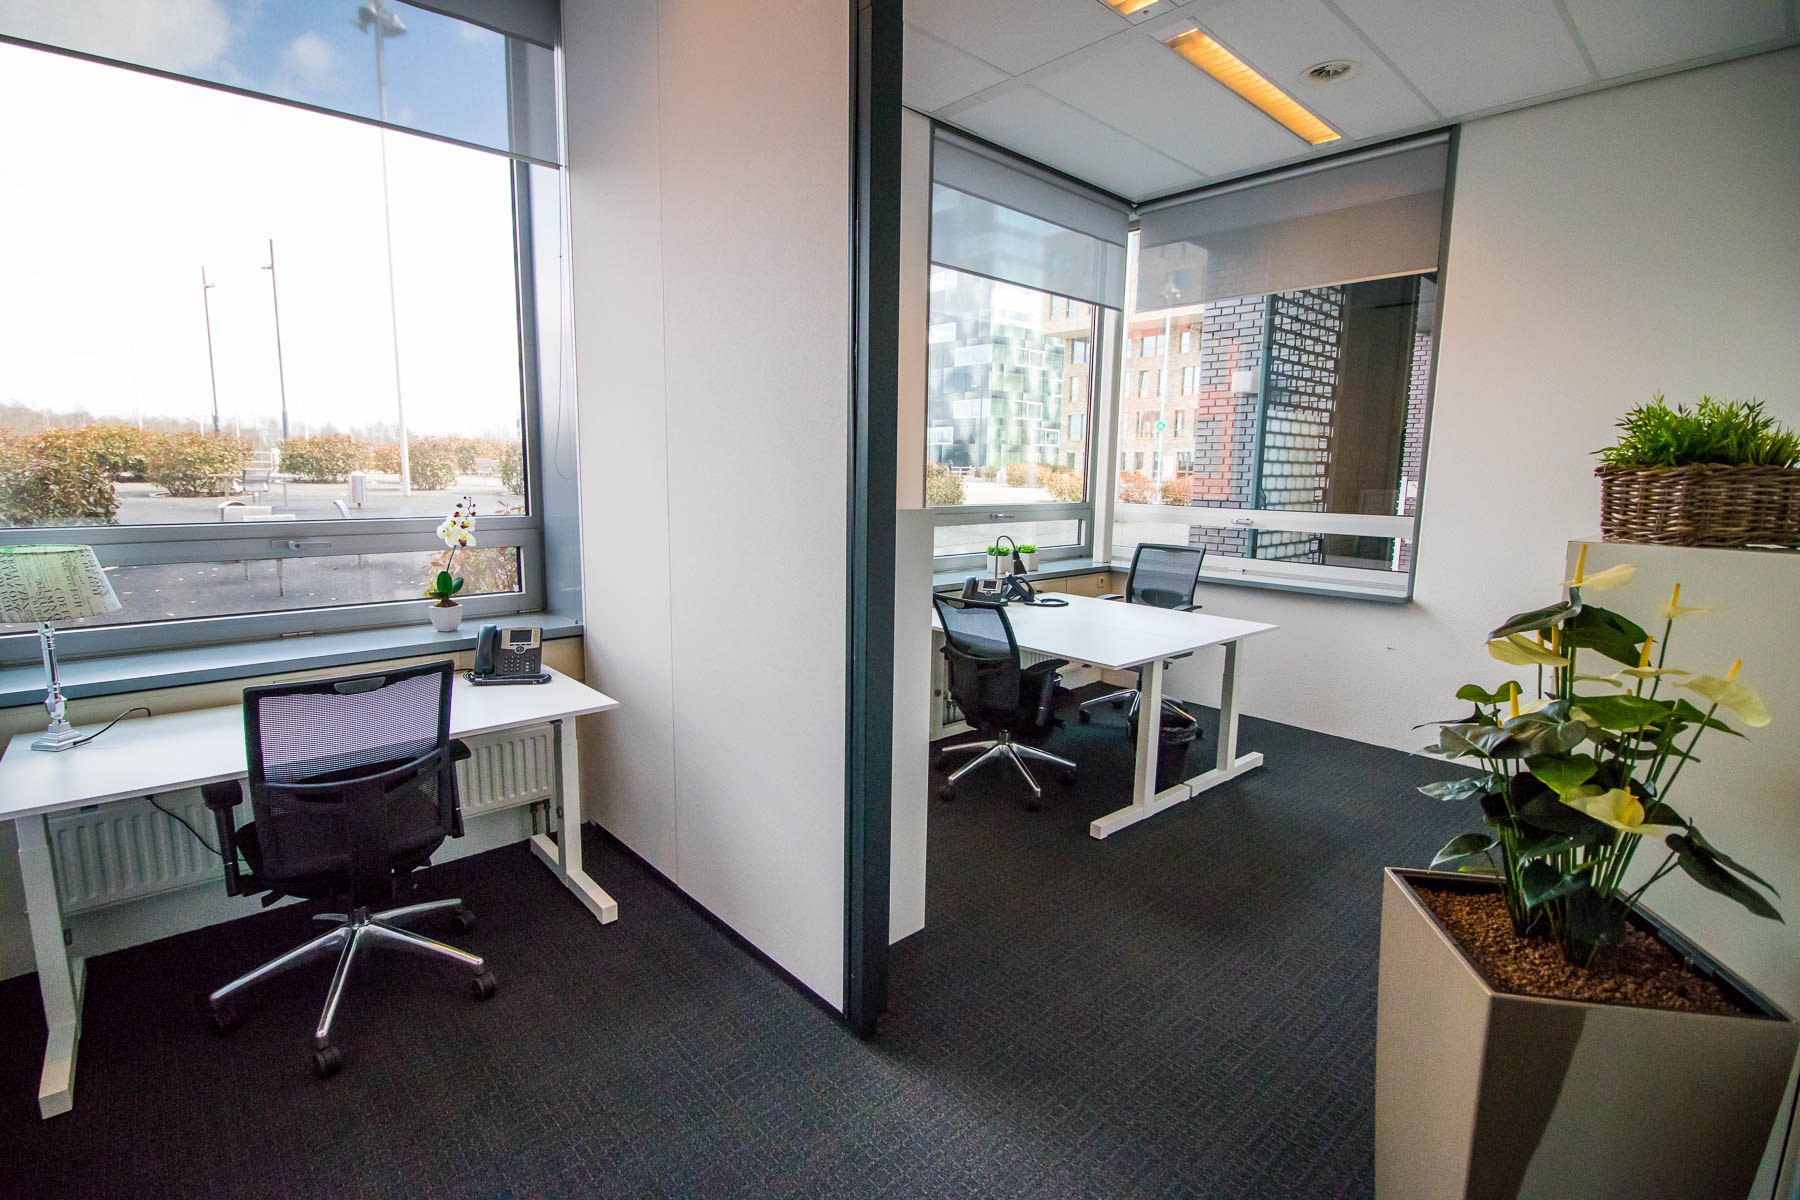 Several sizes of office spaces